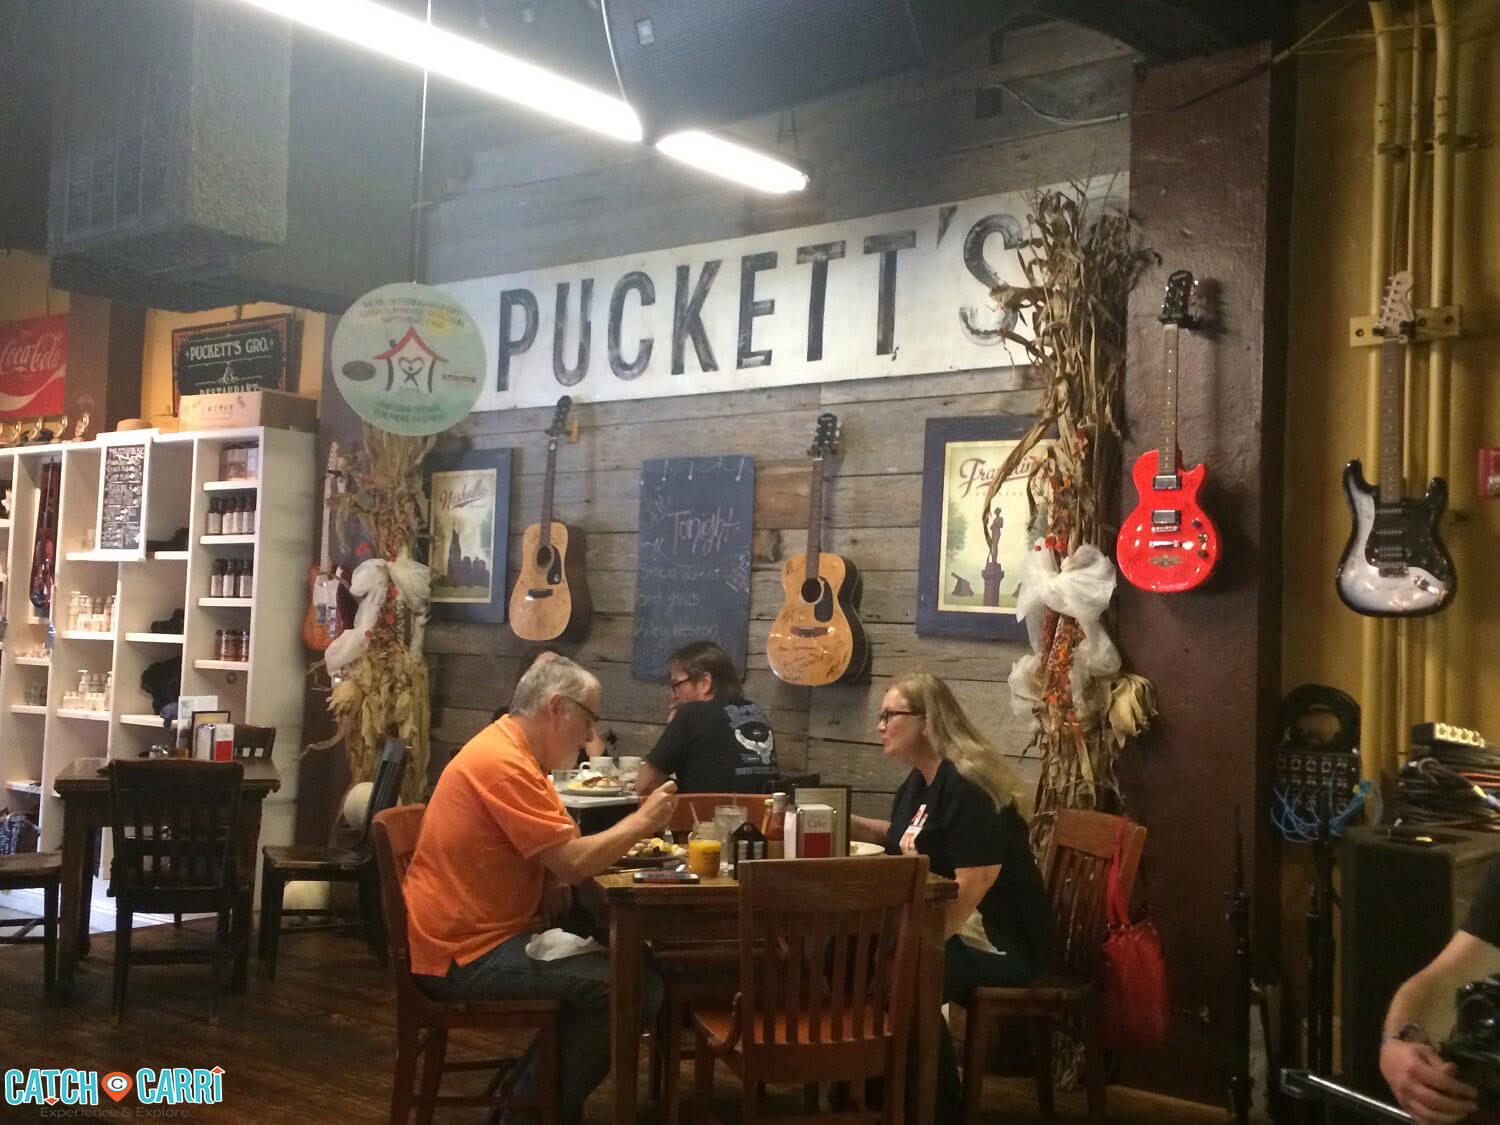 Franklin Tennessee Music Culture And Food Catchcarri Com